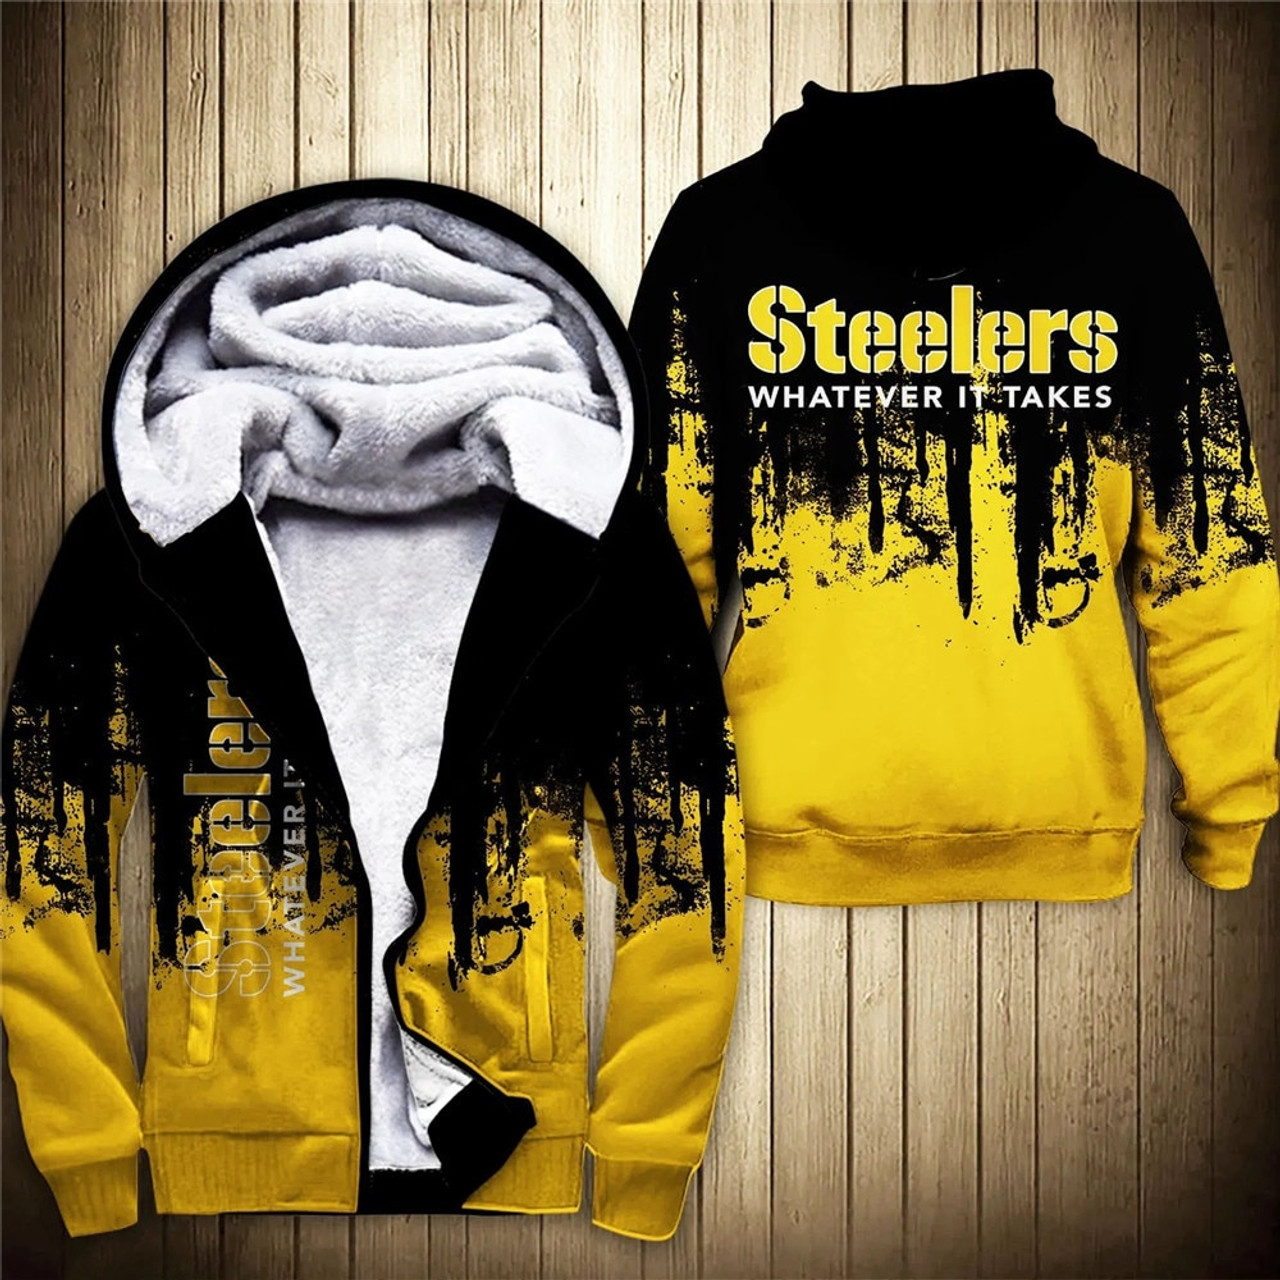 **(OFFICIAL-N.F.L.PITTSBURGH-STEELERS-FLEECE-ZIPPERED-HOODIES & WHATEVER-IT-TAKES/OFFICIAL-STEELERS-TEAM-LOGOS & OFFICIAL-CLASSIC-TEAM-COLORS/CUSTOM-3D-GRAPHIC-PRINTED-DOUBLE-SIDED-ALL-OVER-DESIGN/PREMIUM-FLEECE-LINED-STEELERS-TEAM-ZIP-UP-HOODIES)**